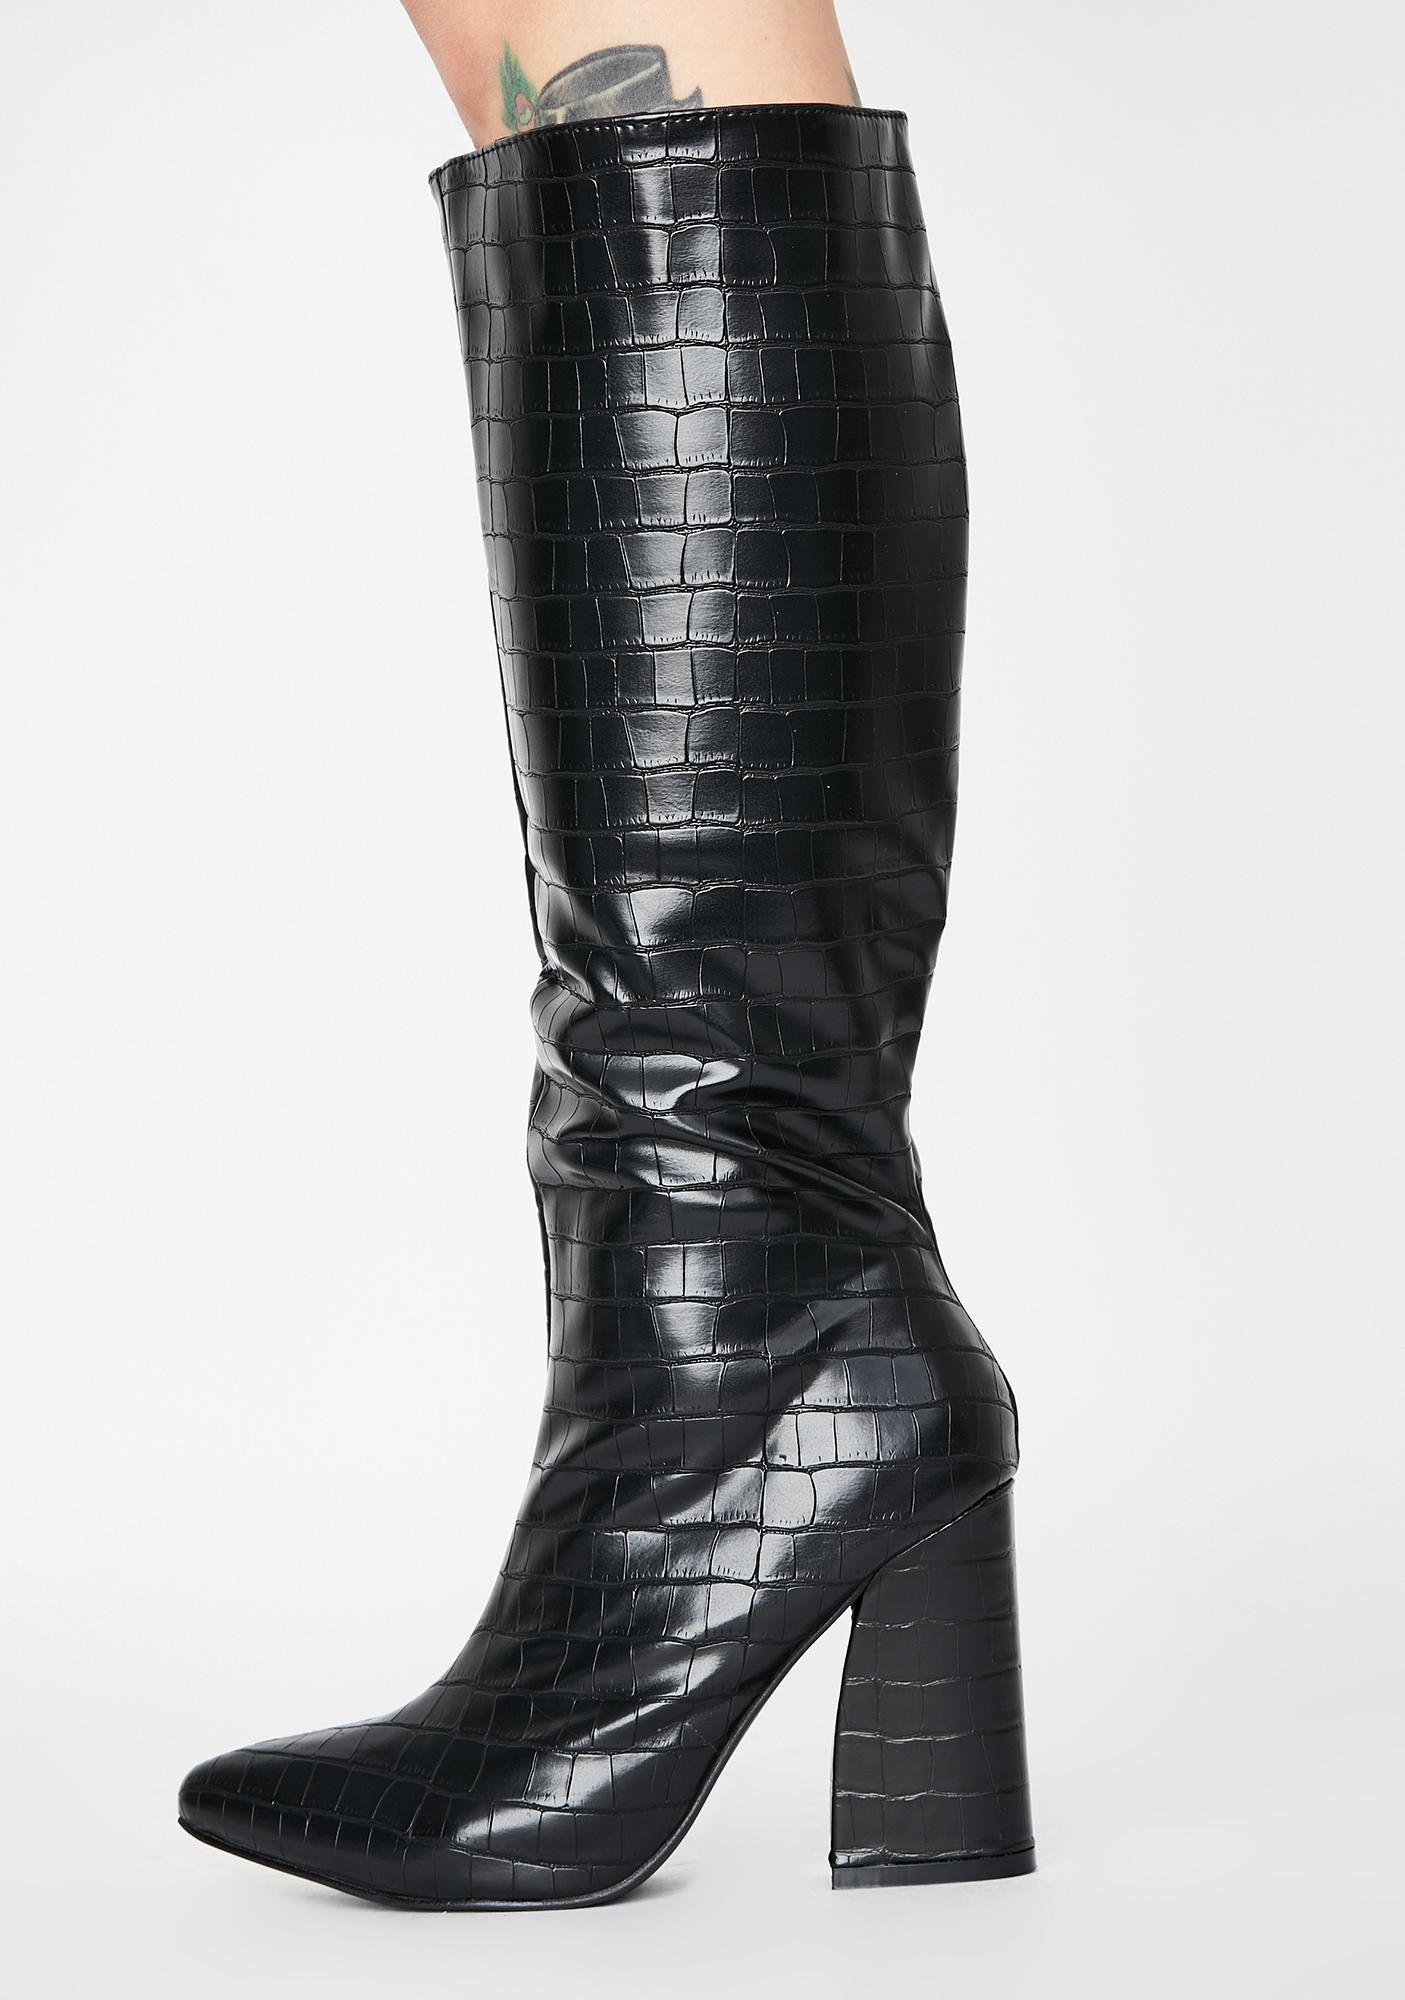 Cobra Couture Knee High Boots